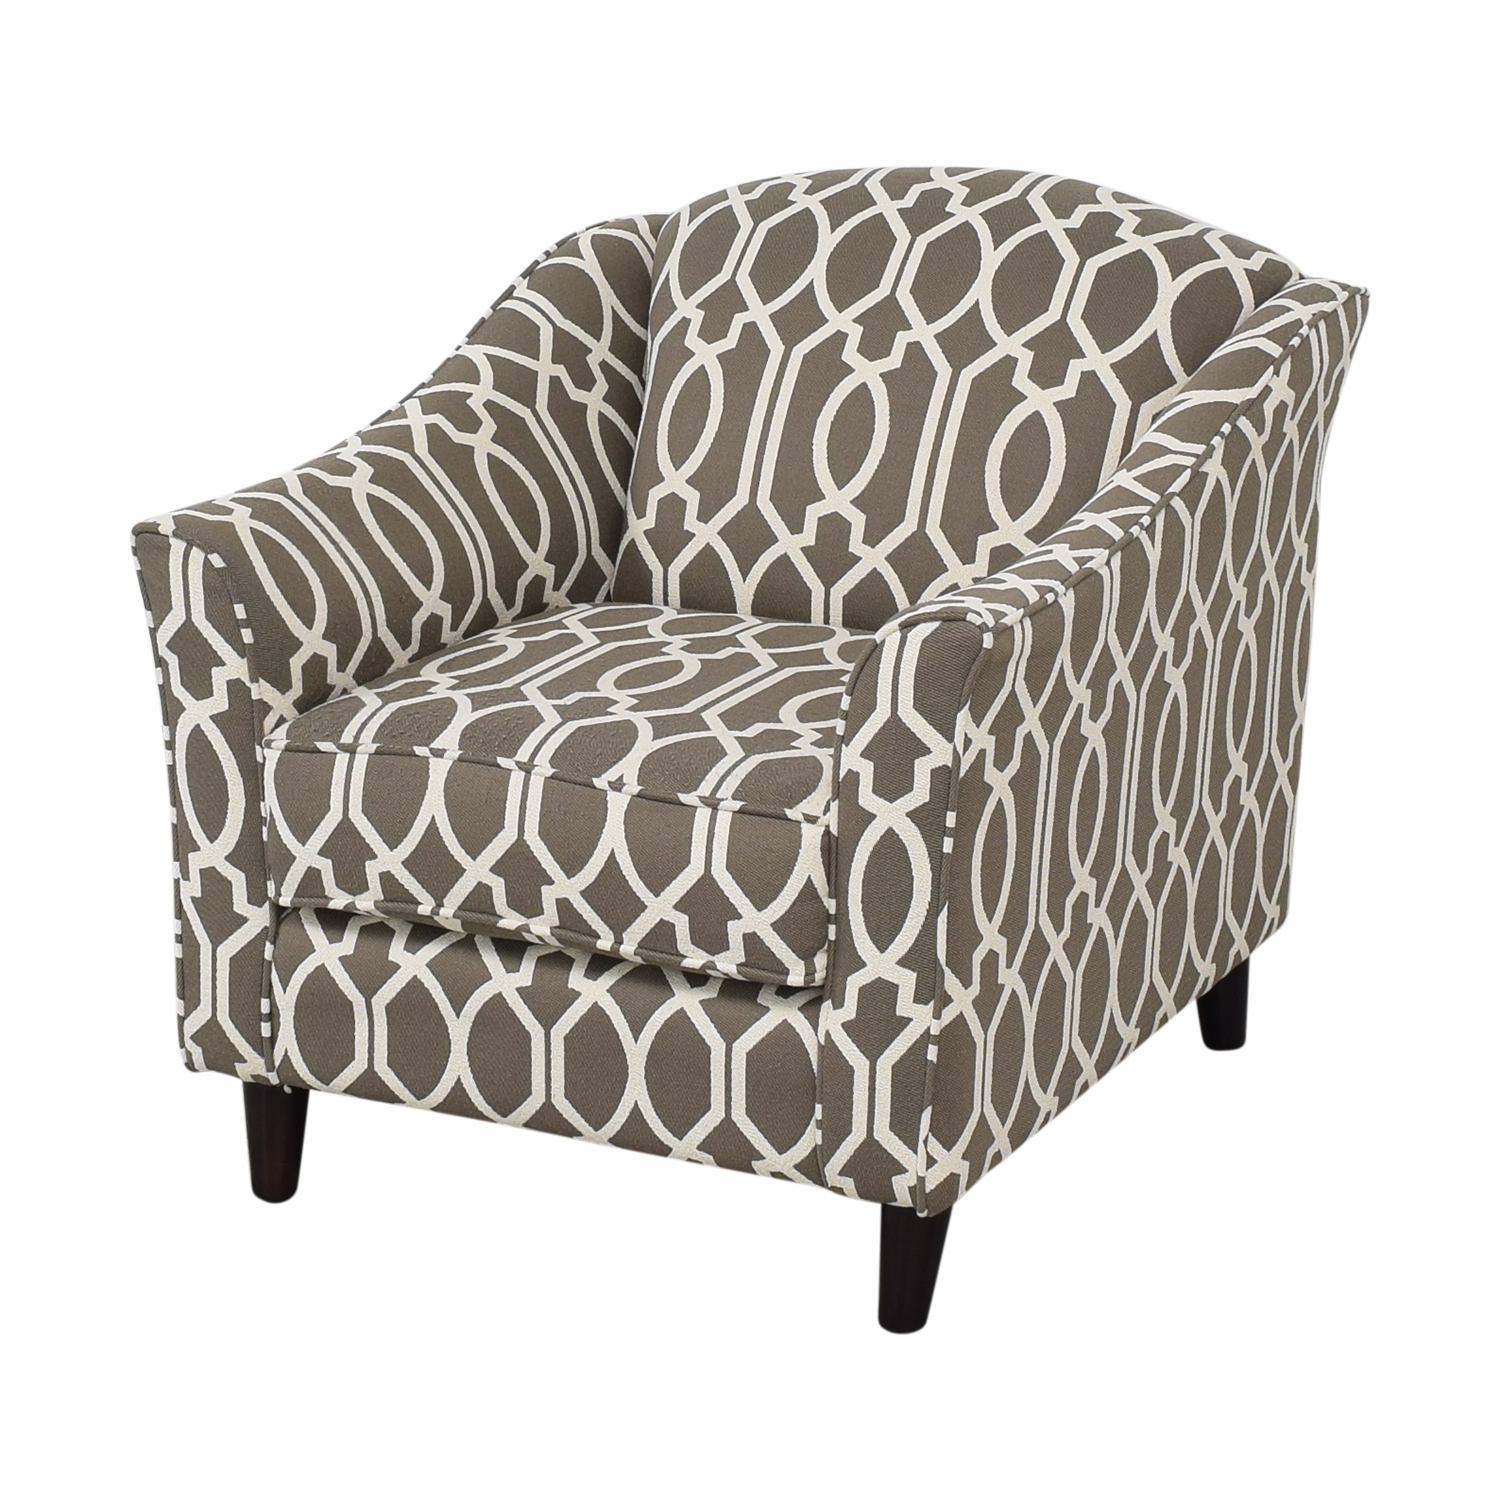 shop Raymour & Flanigan Accent Chair Raymour & Flanigan Accent Chairs